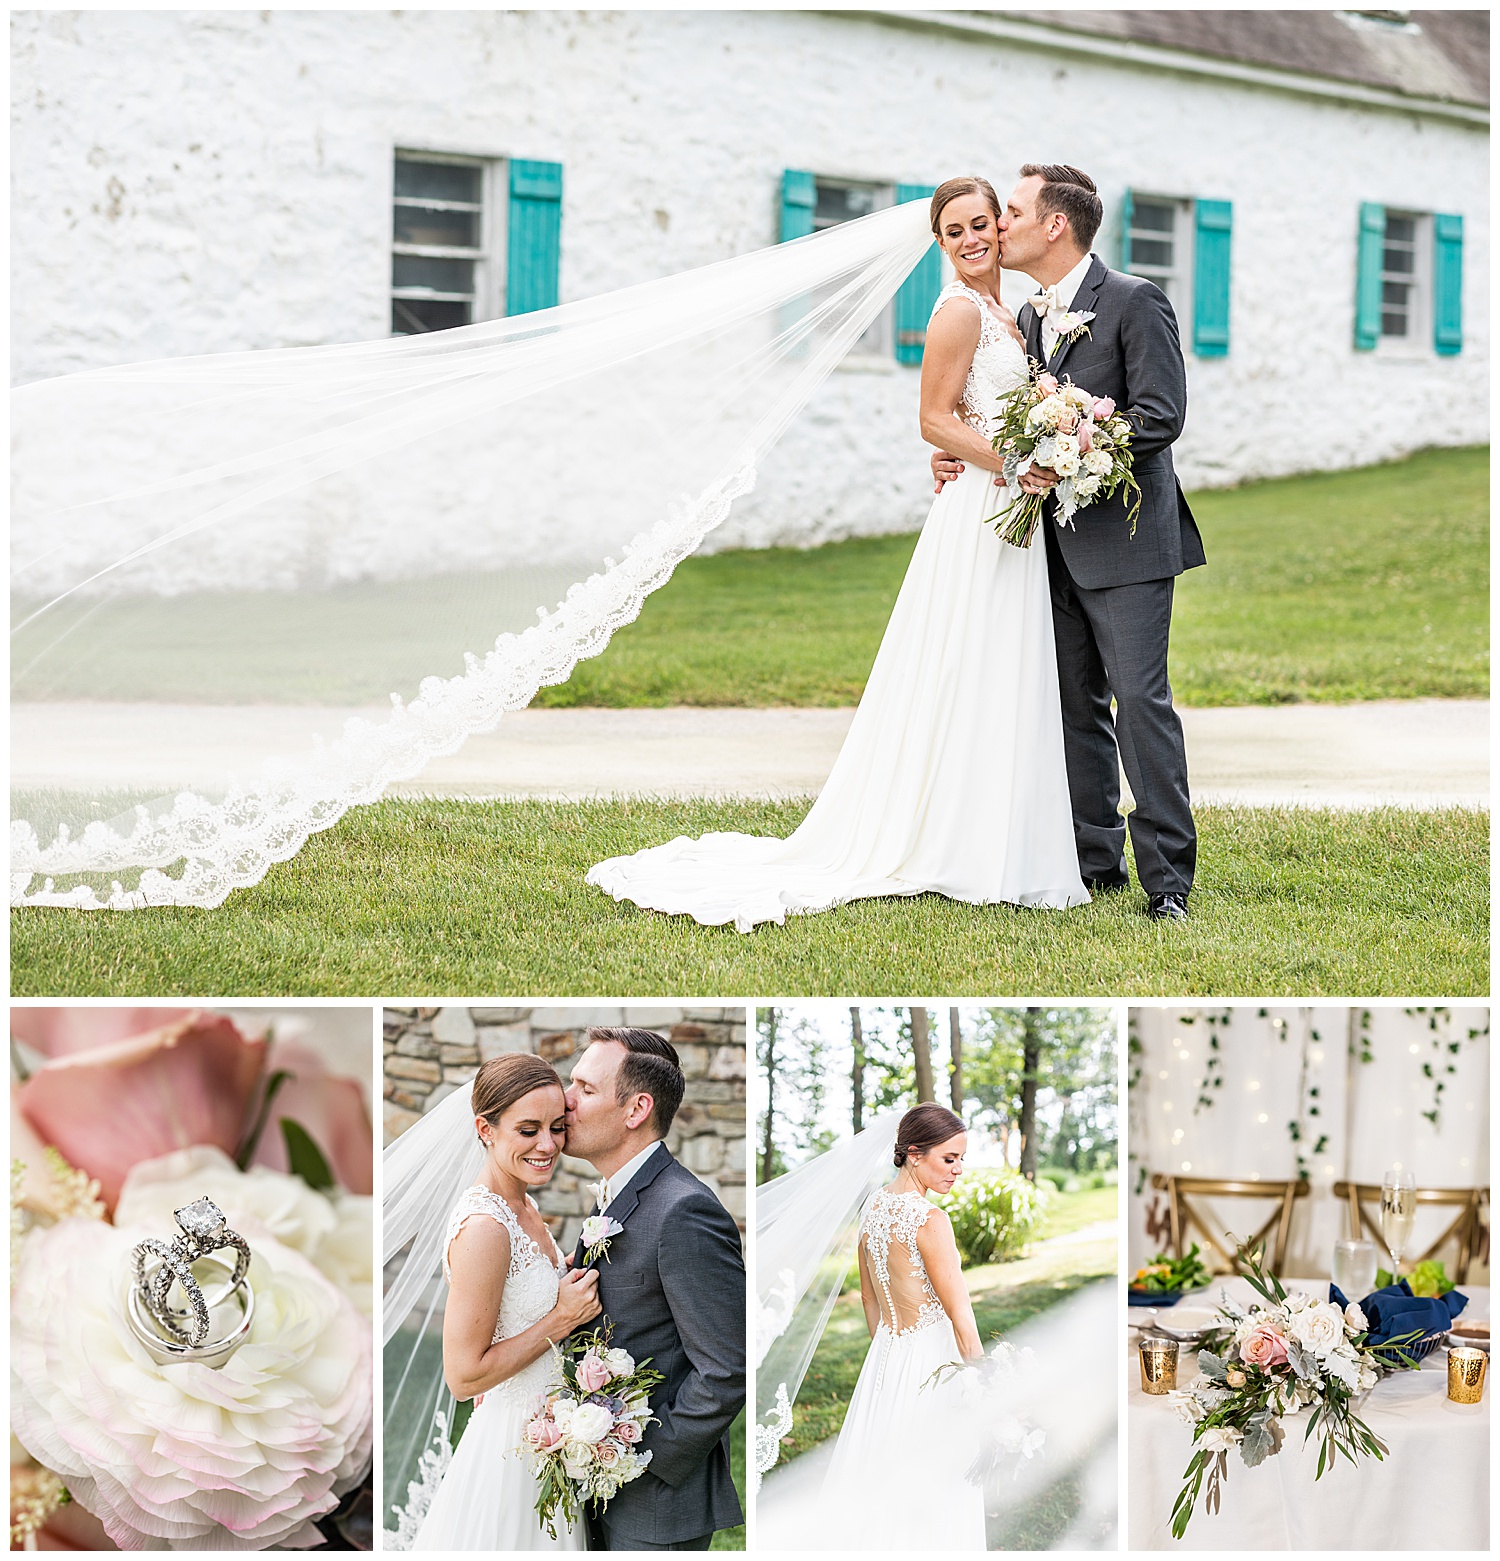 Lindsay Josh Eagles Nest Country Club Wedding Living Radiant Photography photos_header.jpg